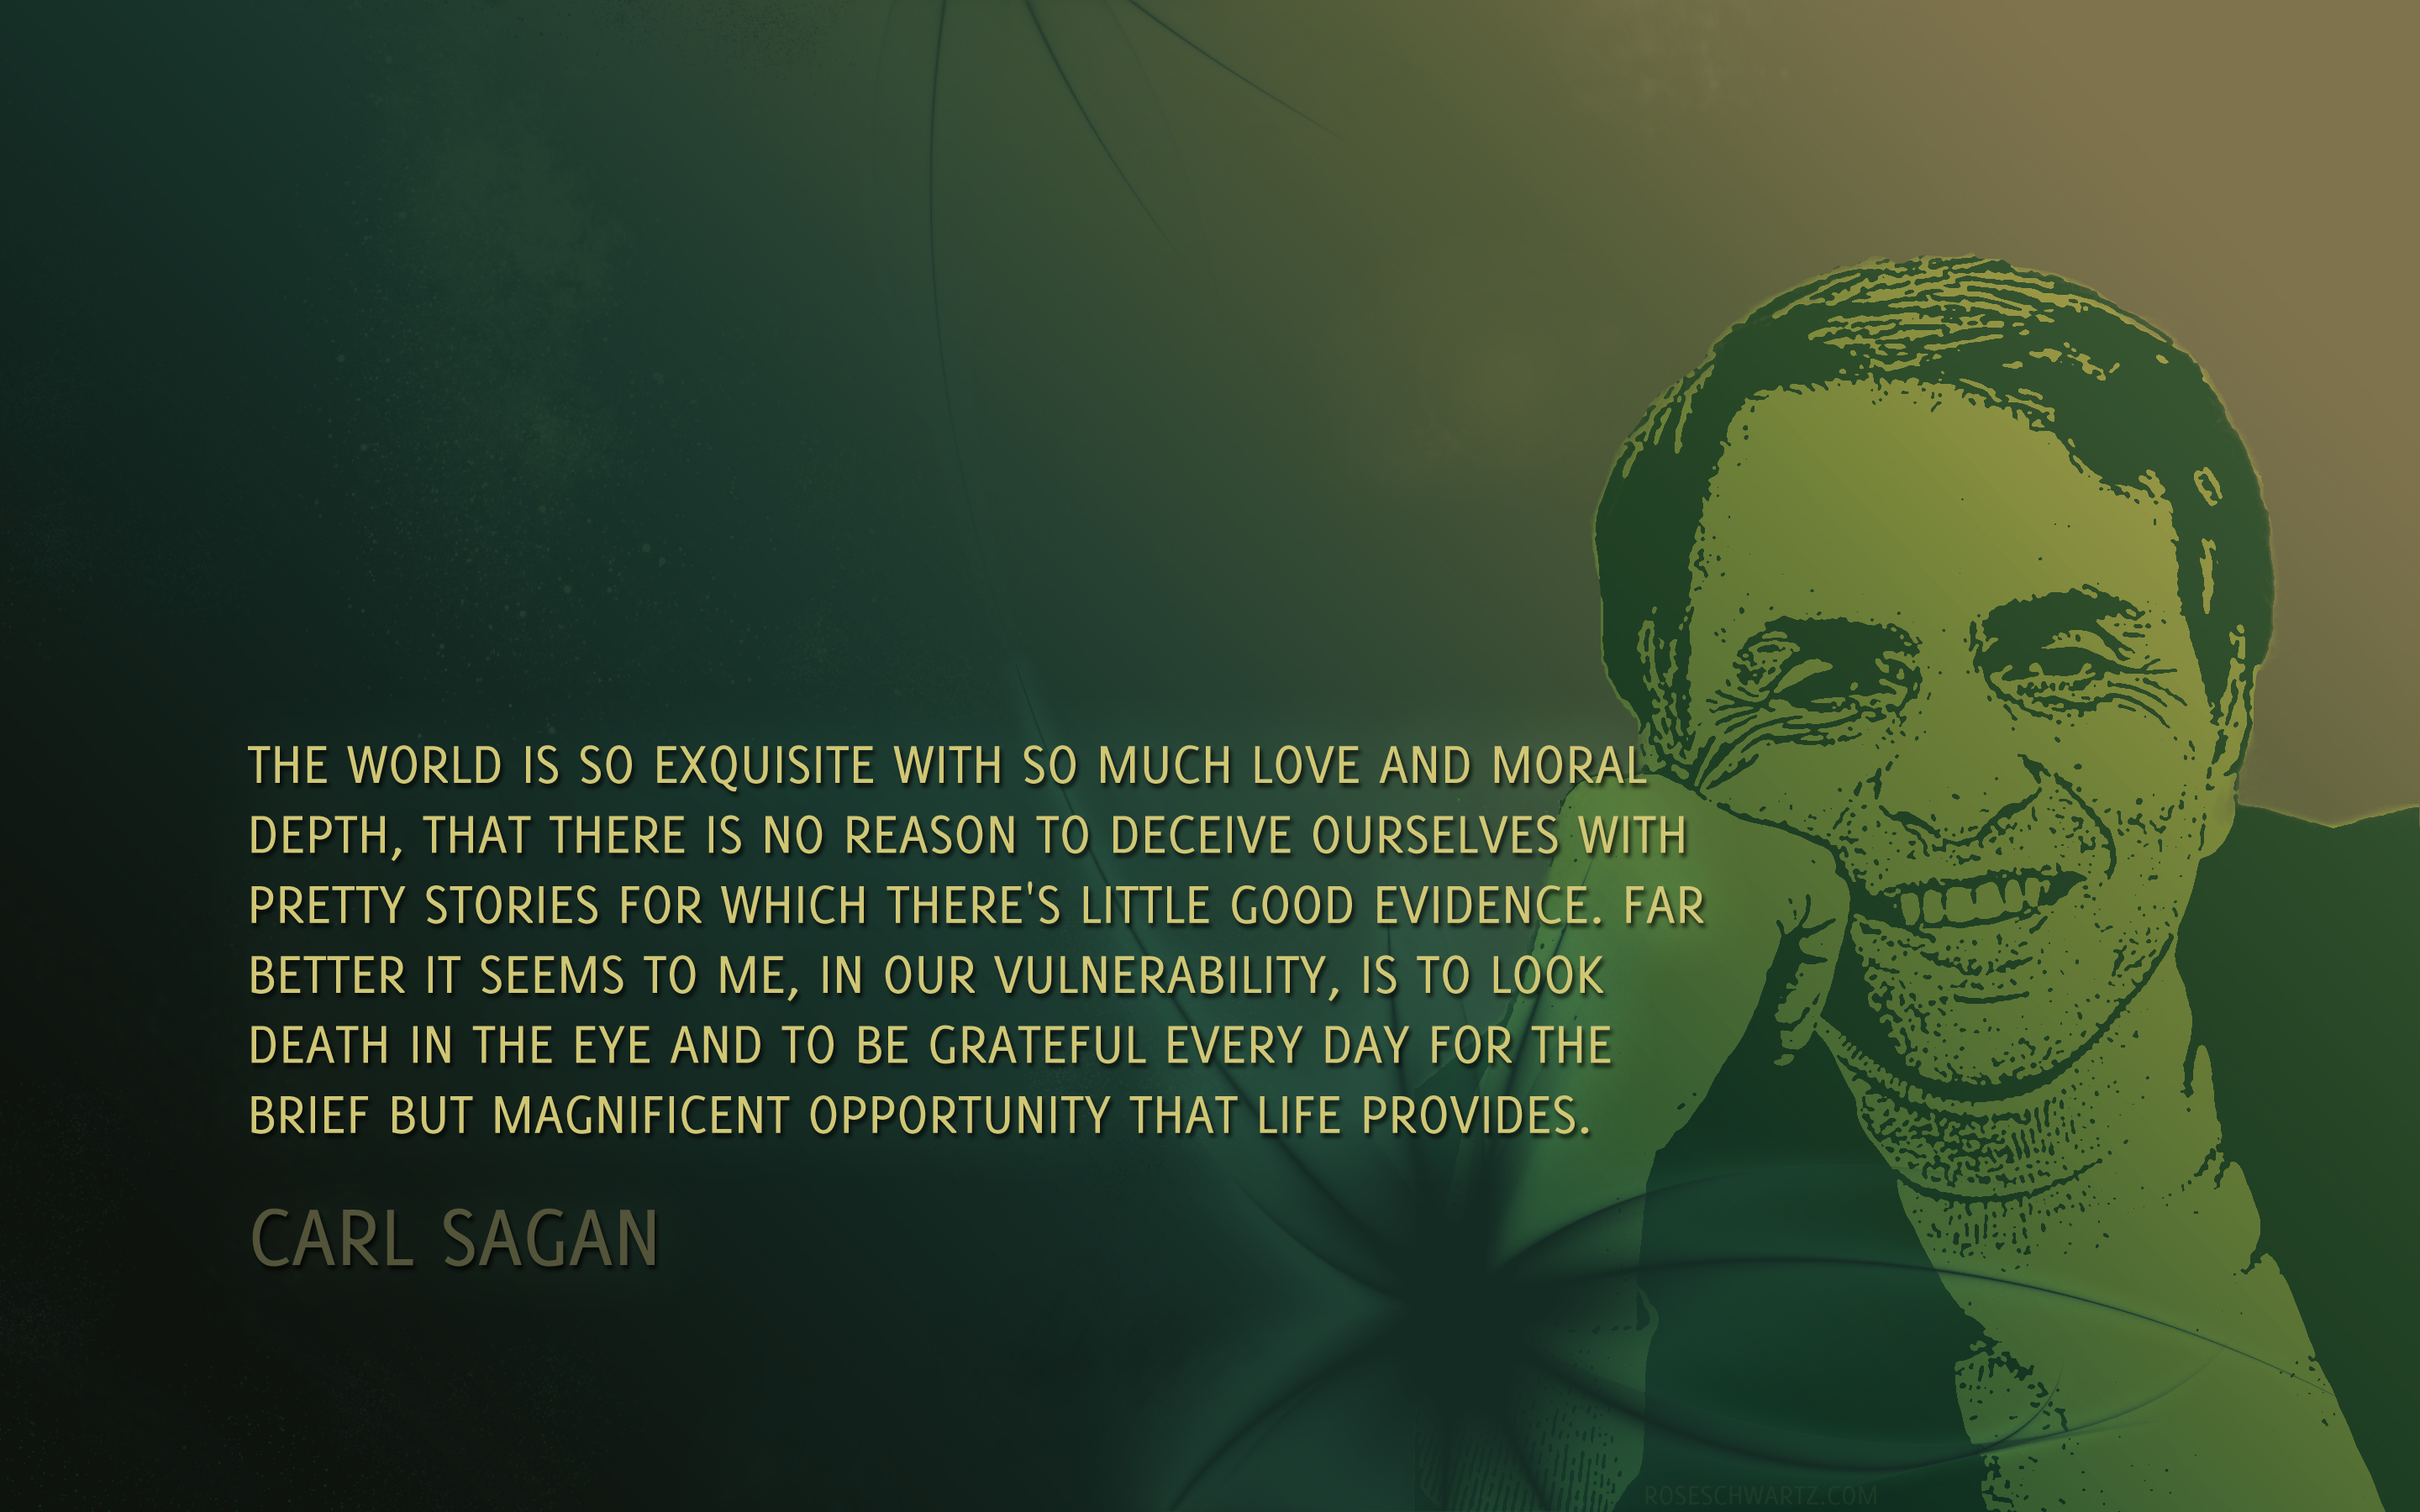 Carl Sagan Love Quote Pinsean Reed On Parts Of Humanity  Pinterest  Carl Sagan